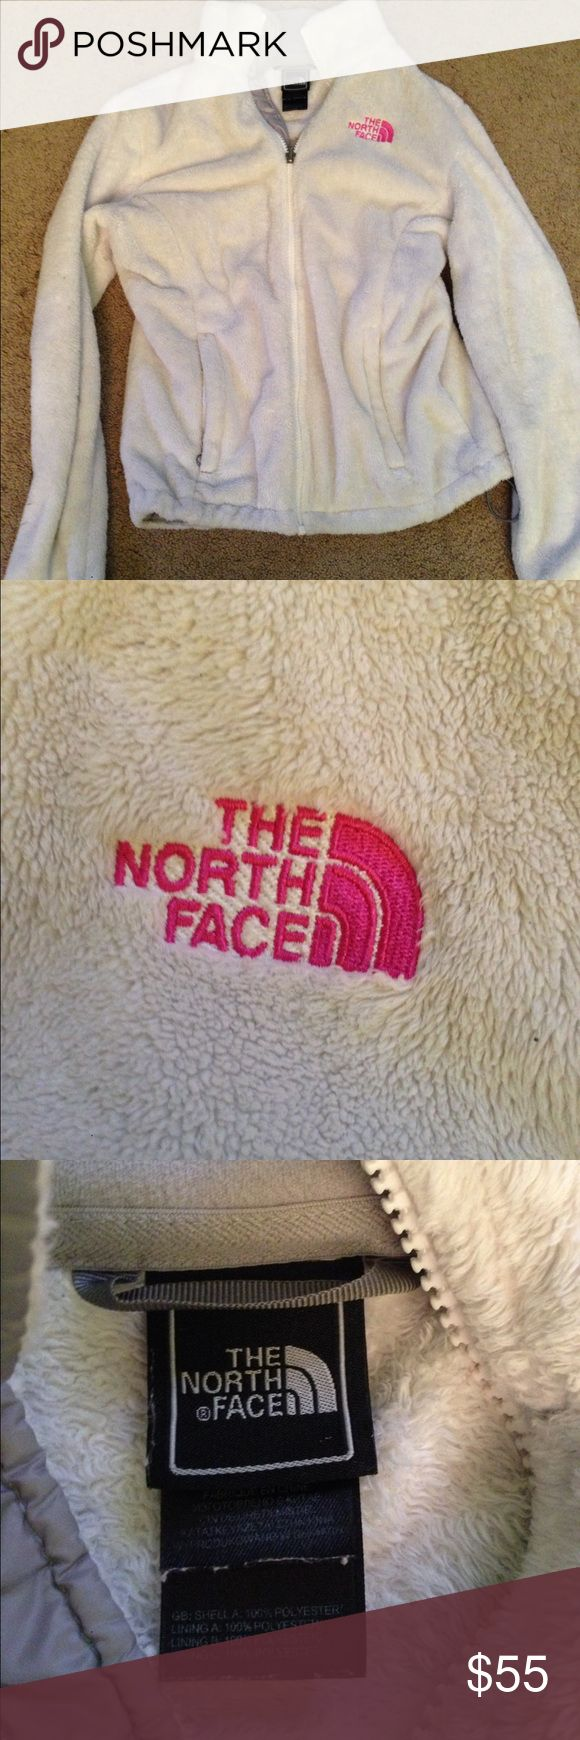 BREAST CANCER AWARENESS LIMITED EDITION NORTH FACE This is a white with pink accented The North Face jacket that has been pristinely kept. There are no obvious cosmetic damages and it will always keep you warm in chilly weather! The size is an XS in women's. North Face Jackets & Coats